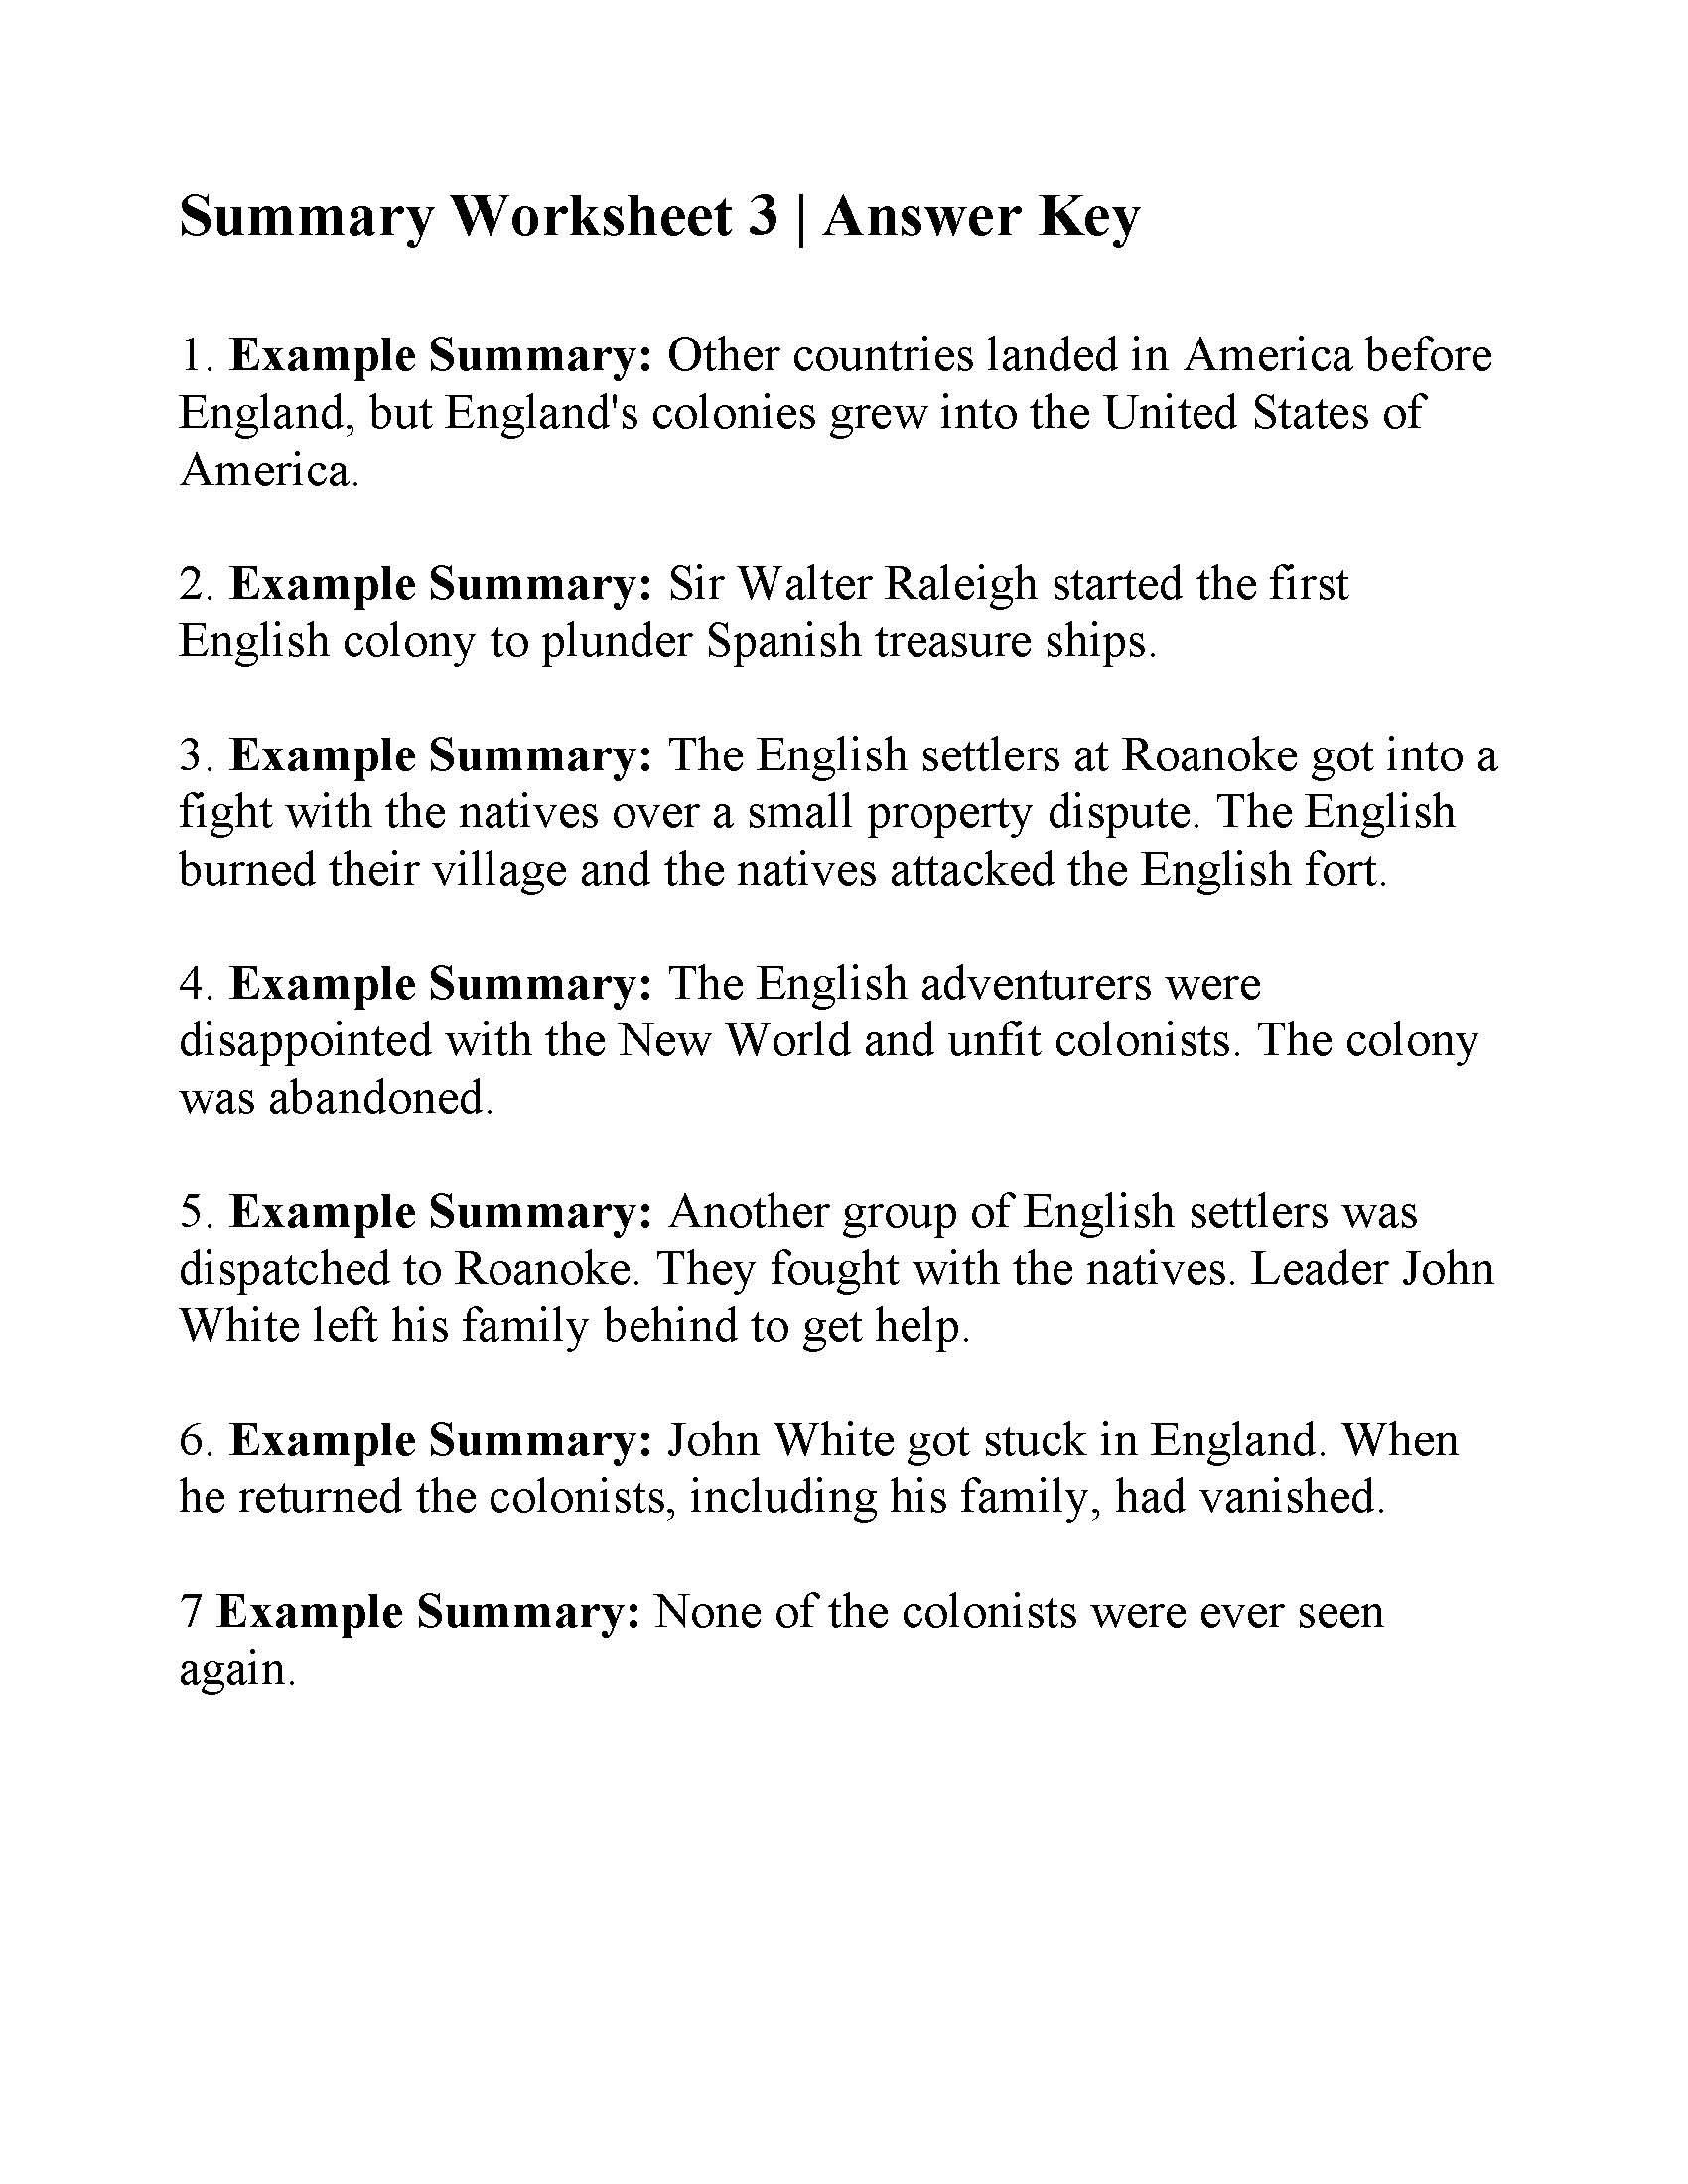 Summary Worksheets Middle School This is the Answer Key for the Summary Worksheet 3